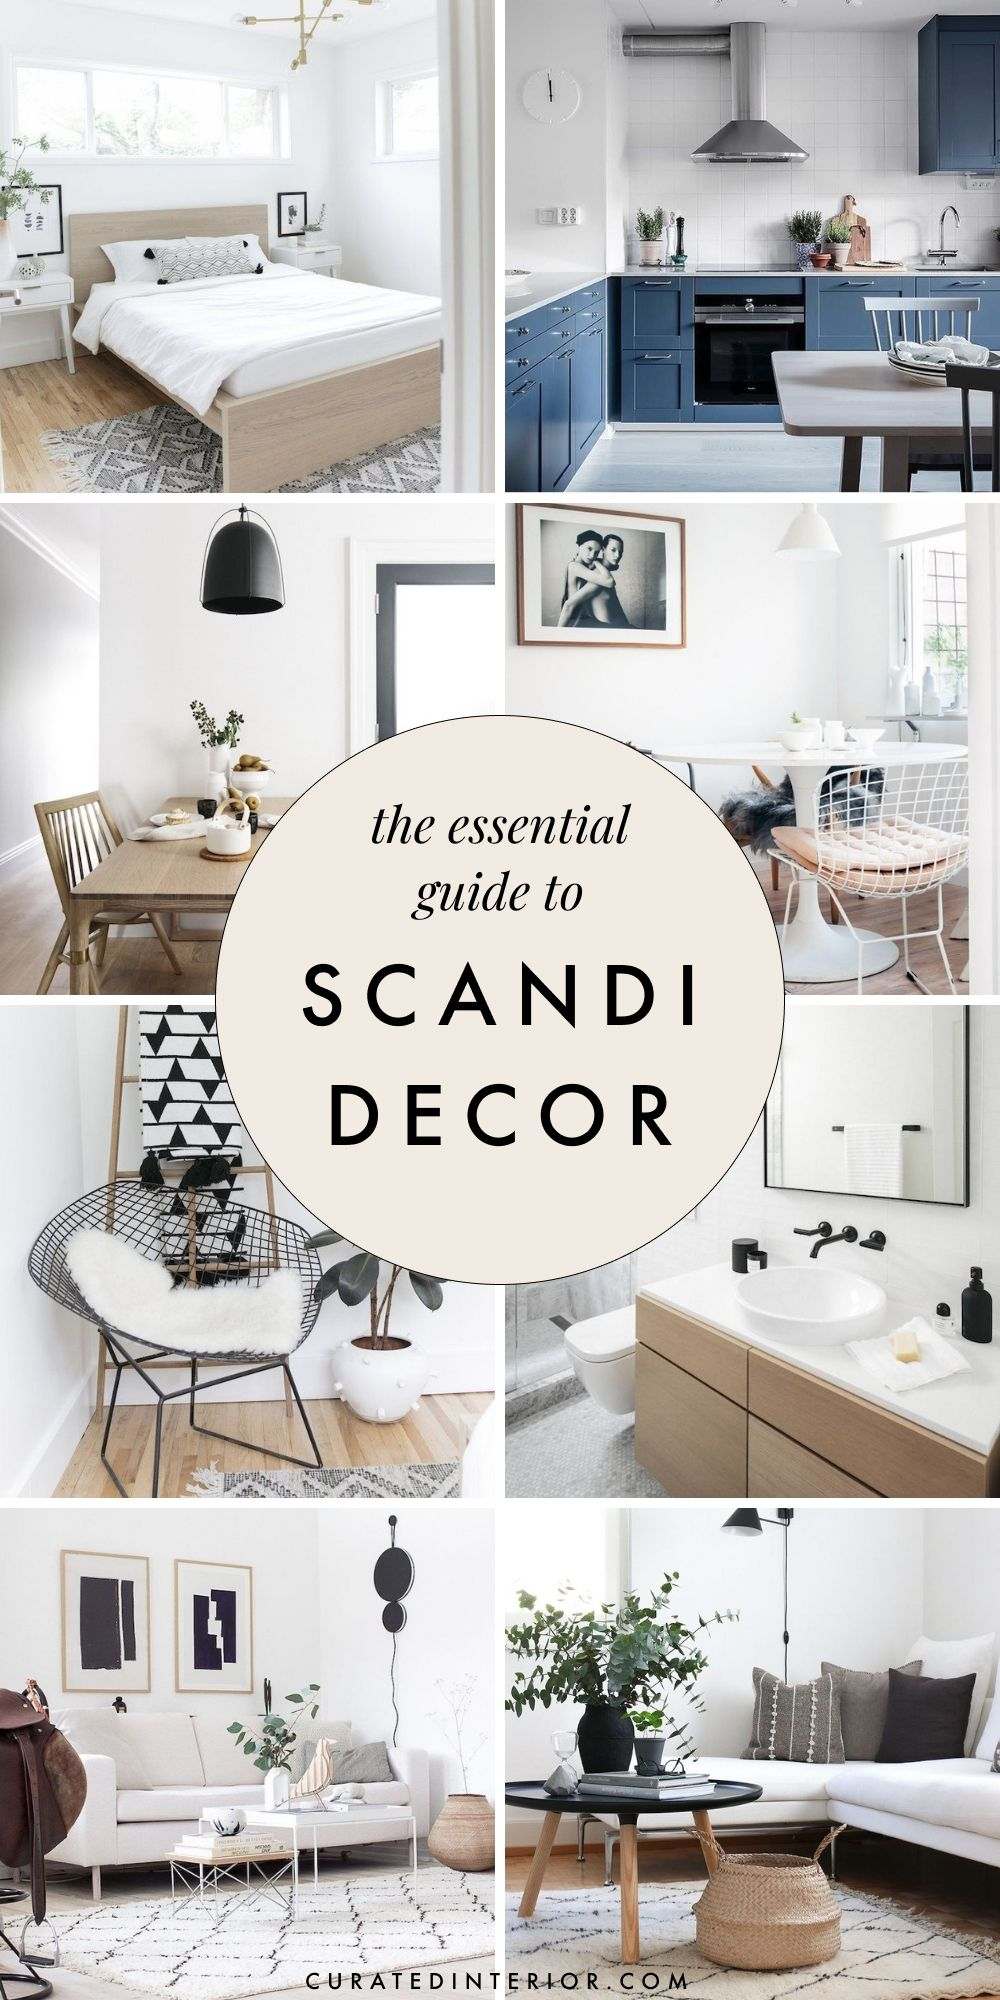 The Essential Guide to Scandinavian Decor